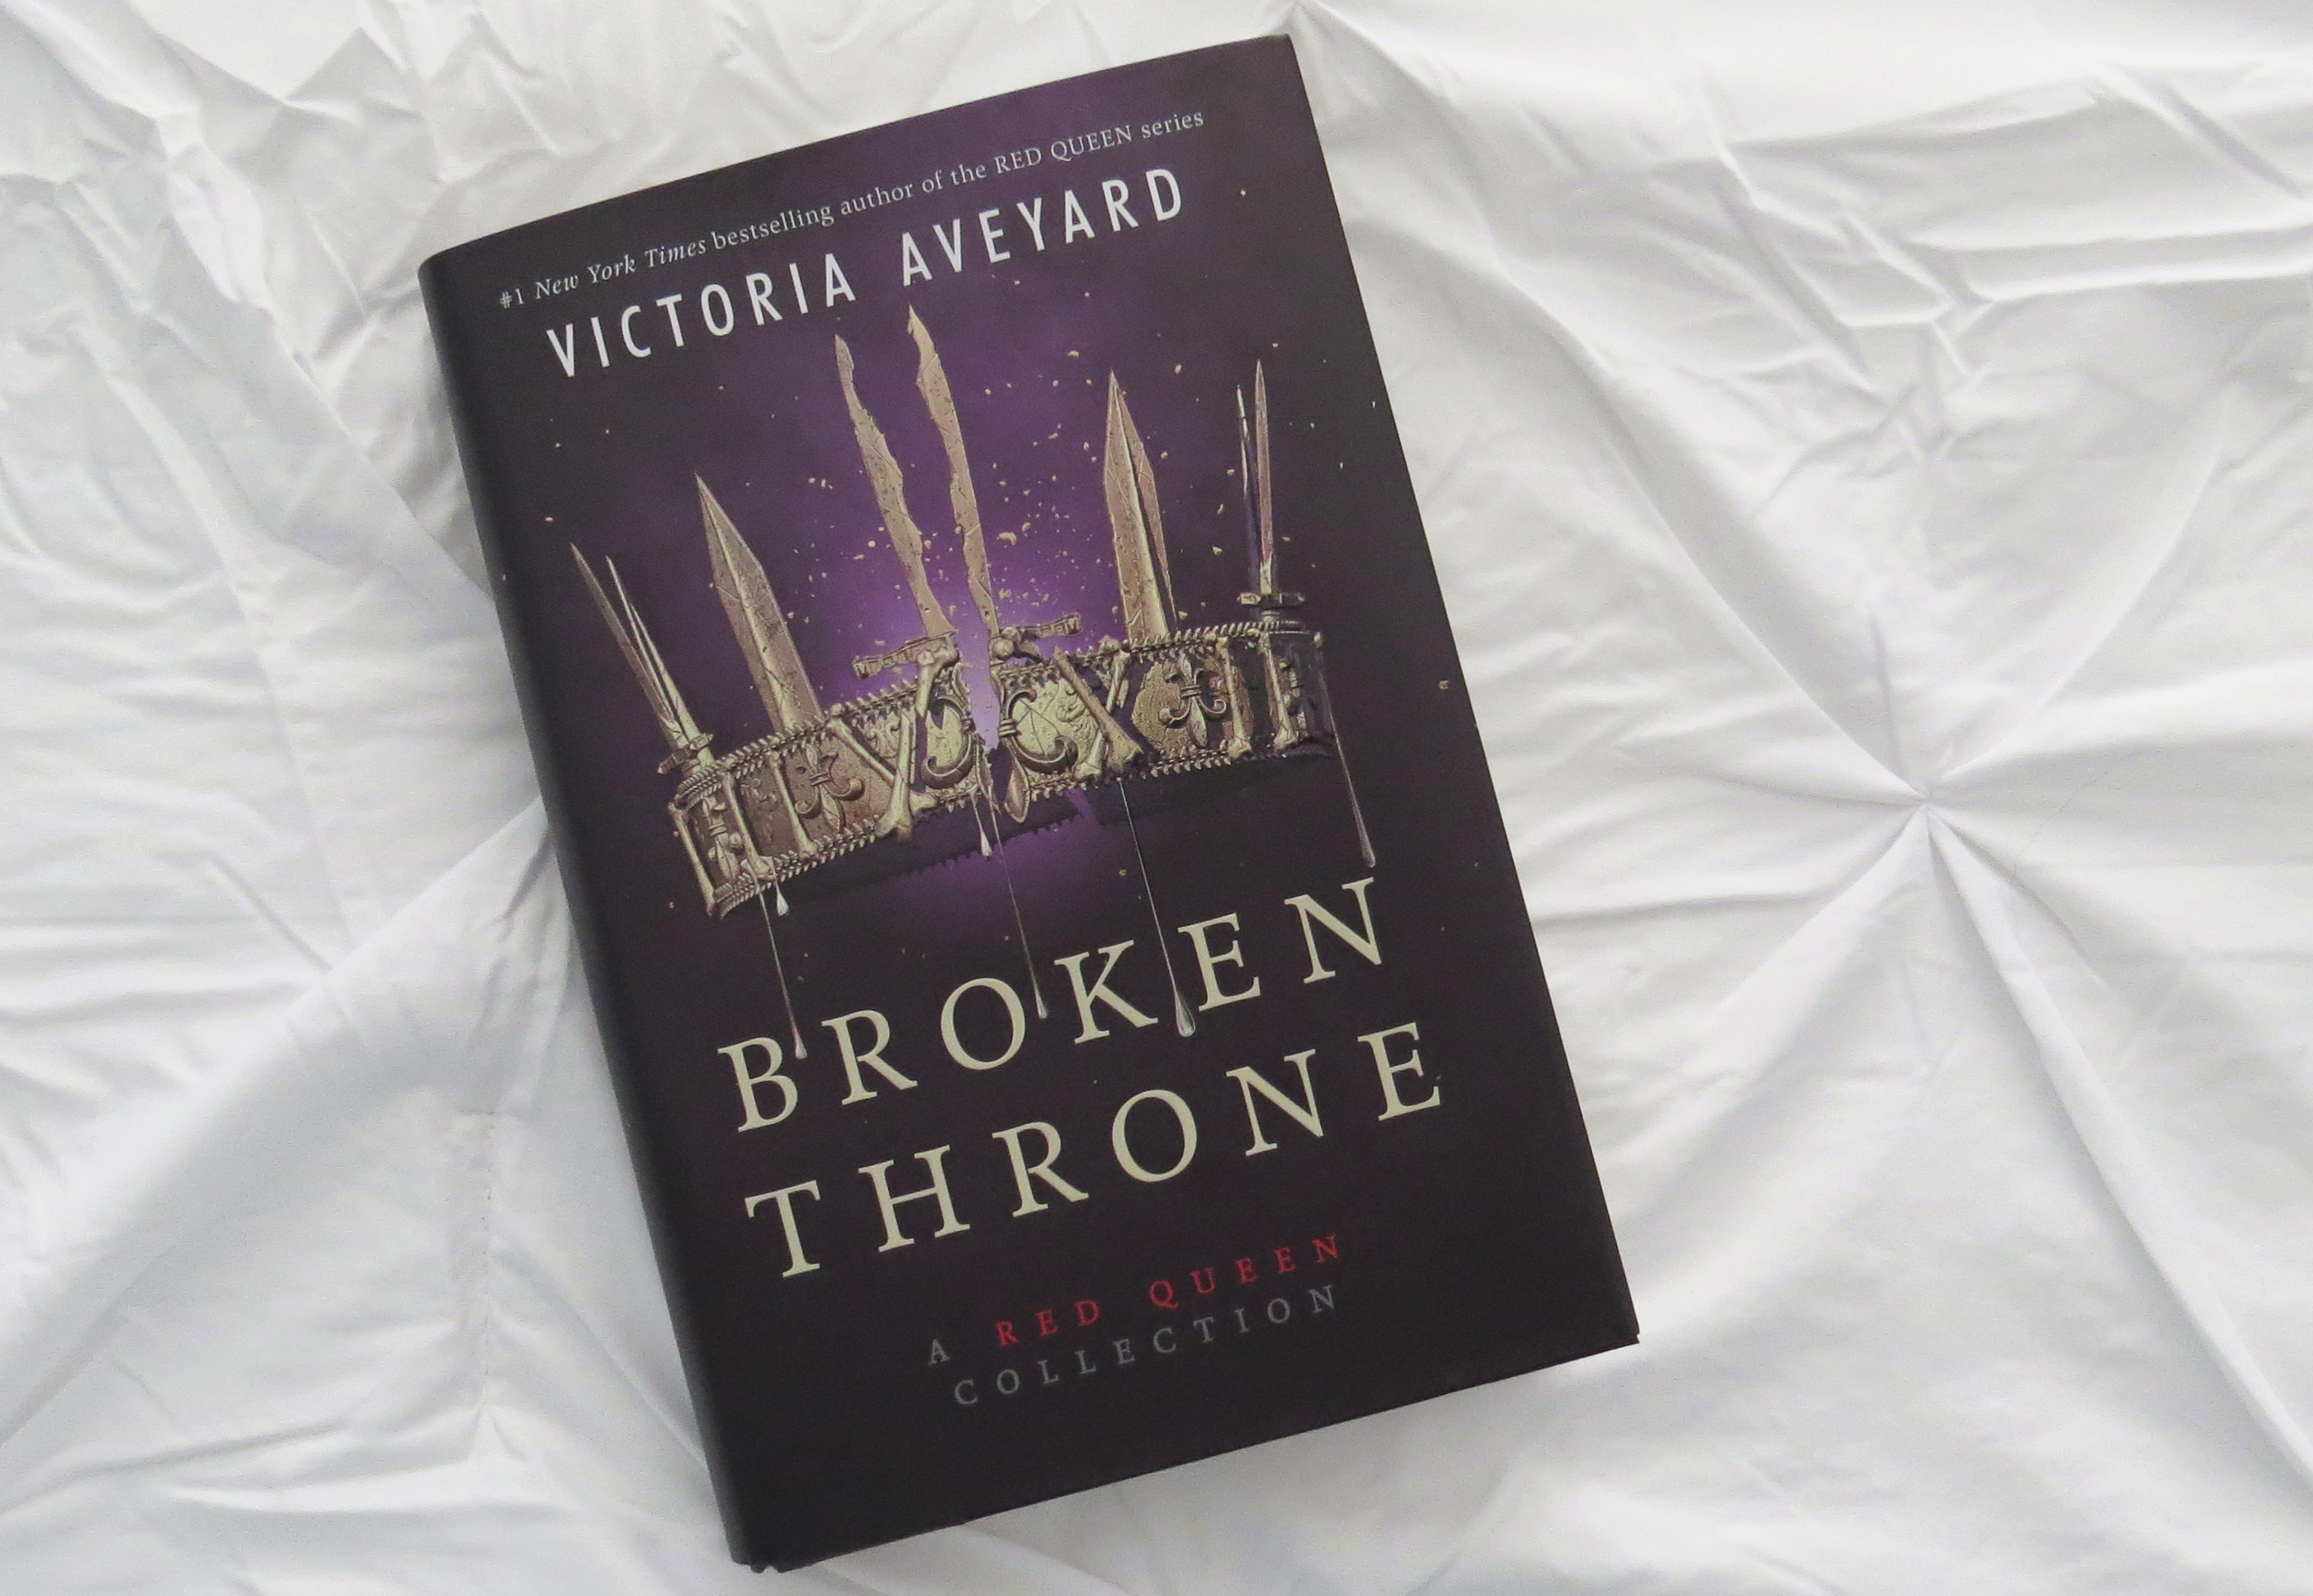 Broken Throne by Victoria Aveyard - The Contented Reader